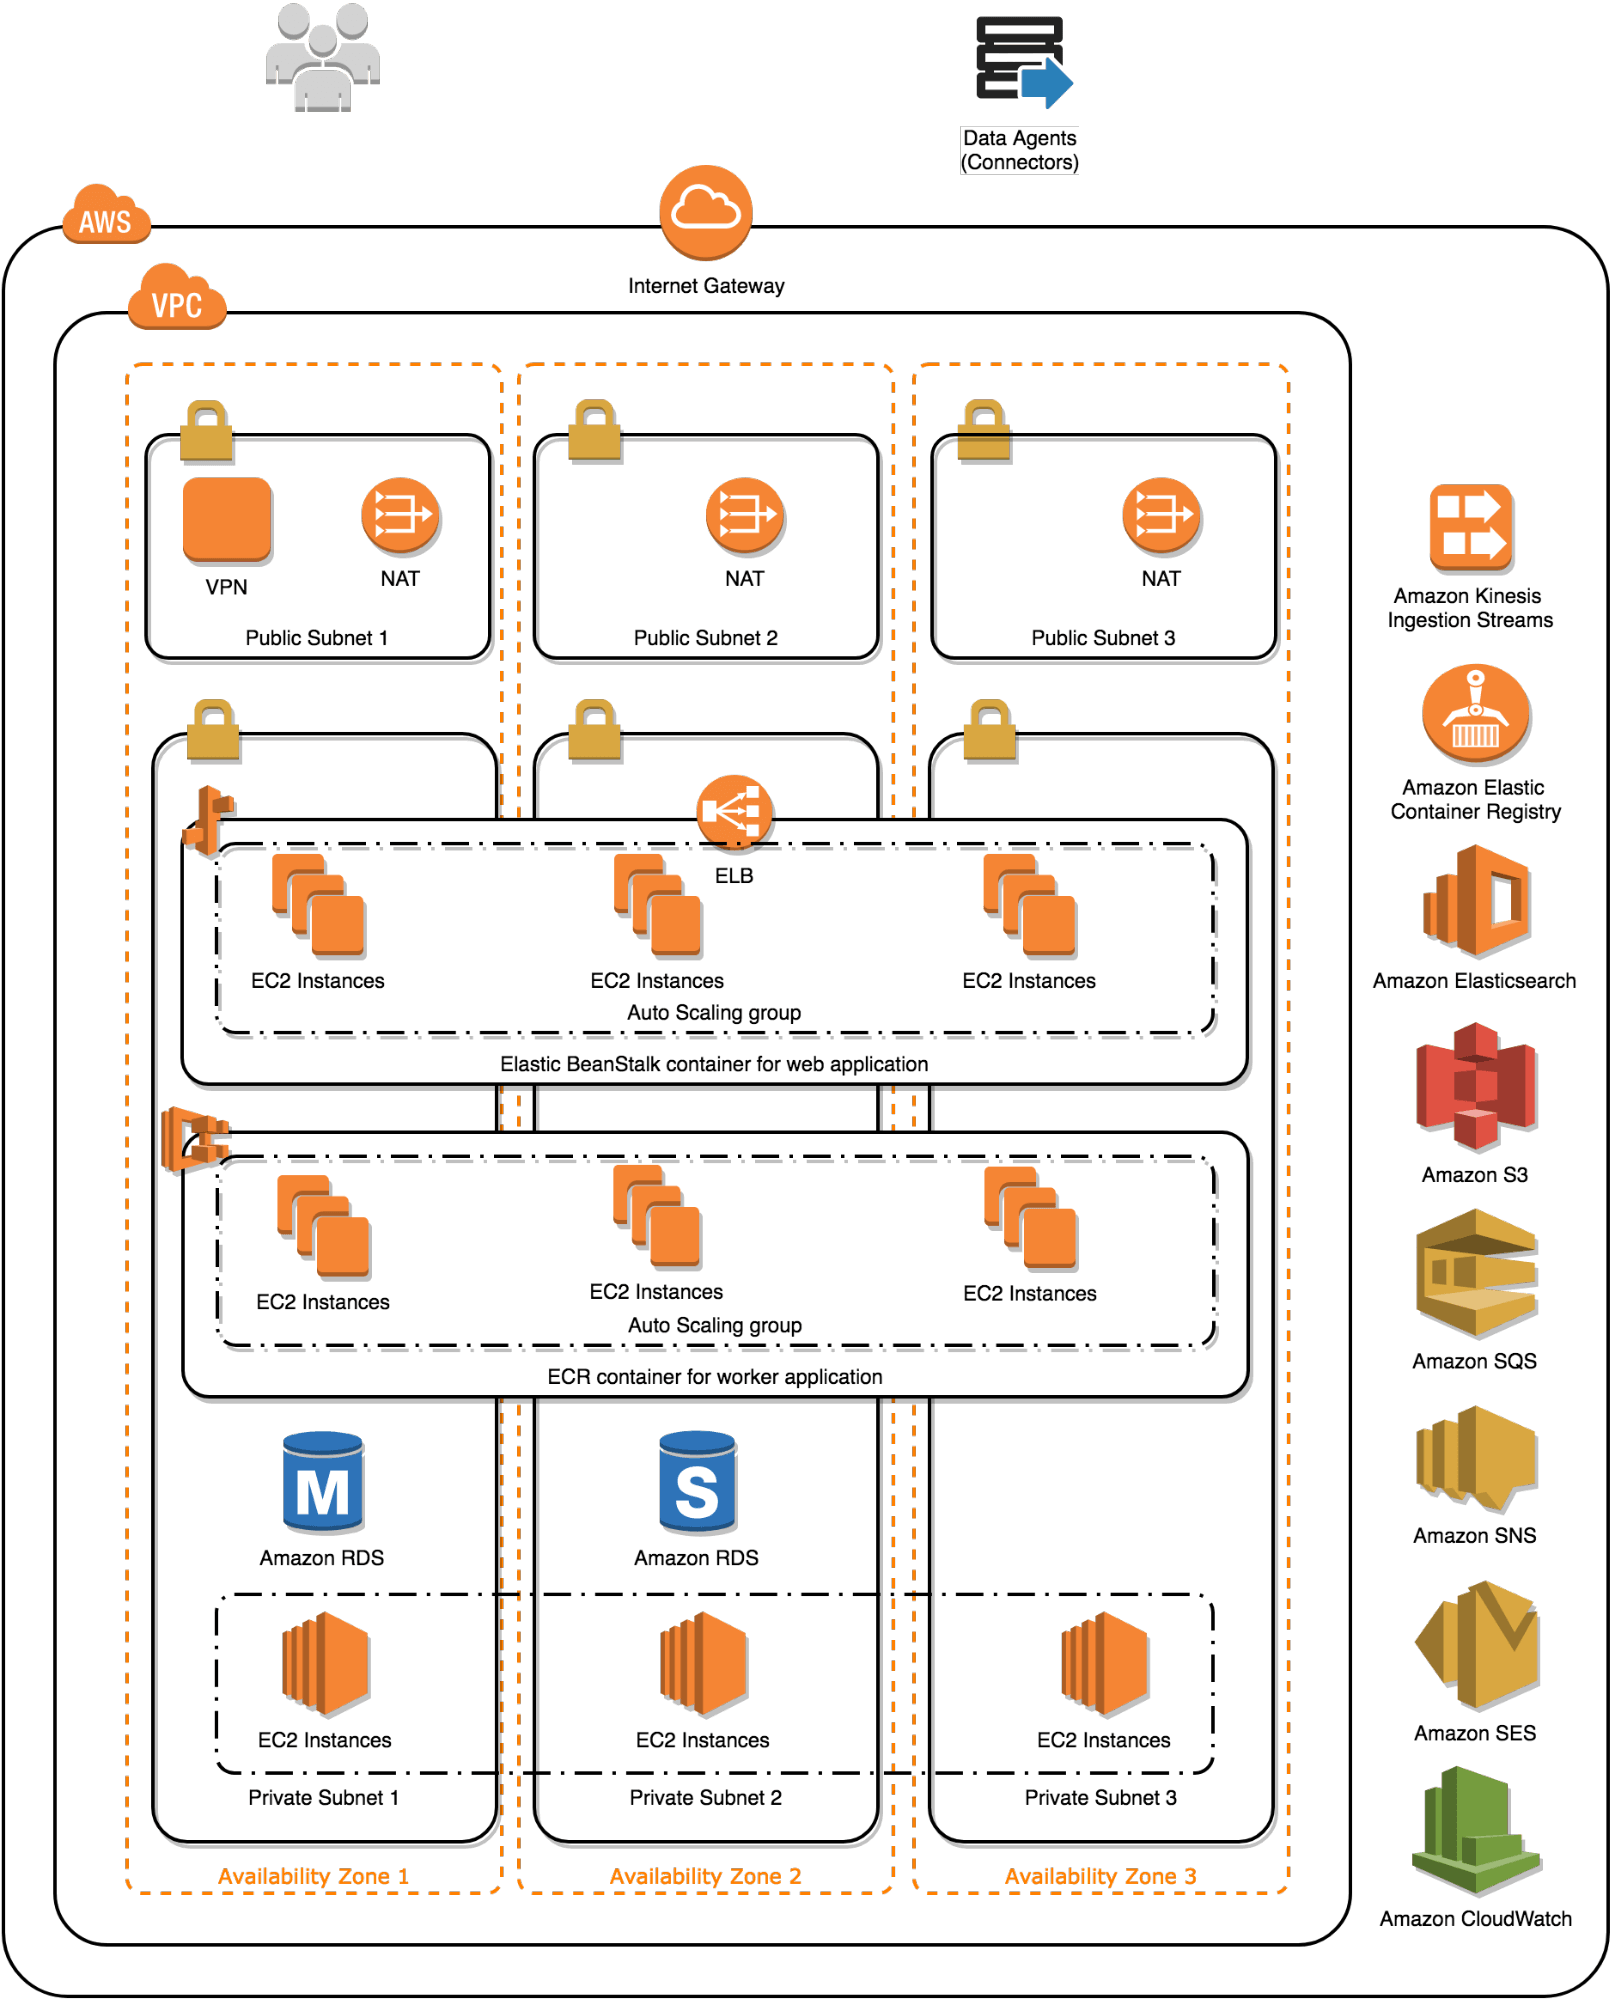 Figure 2: Data Services Deployment